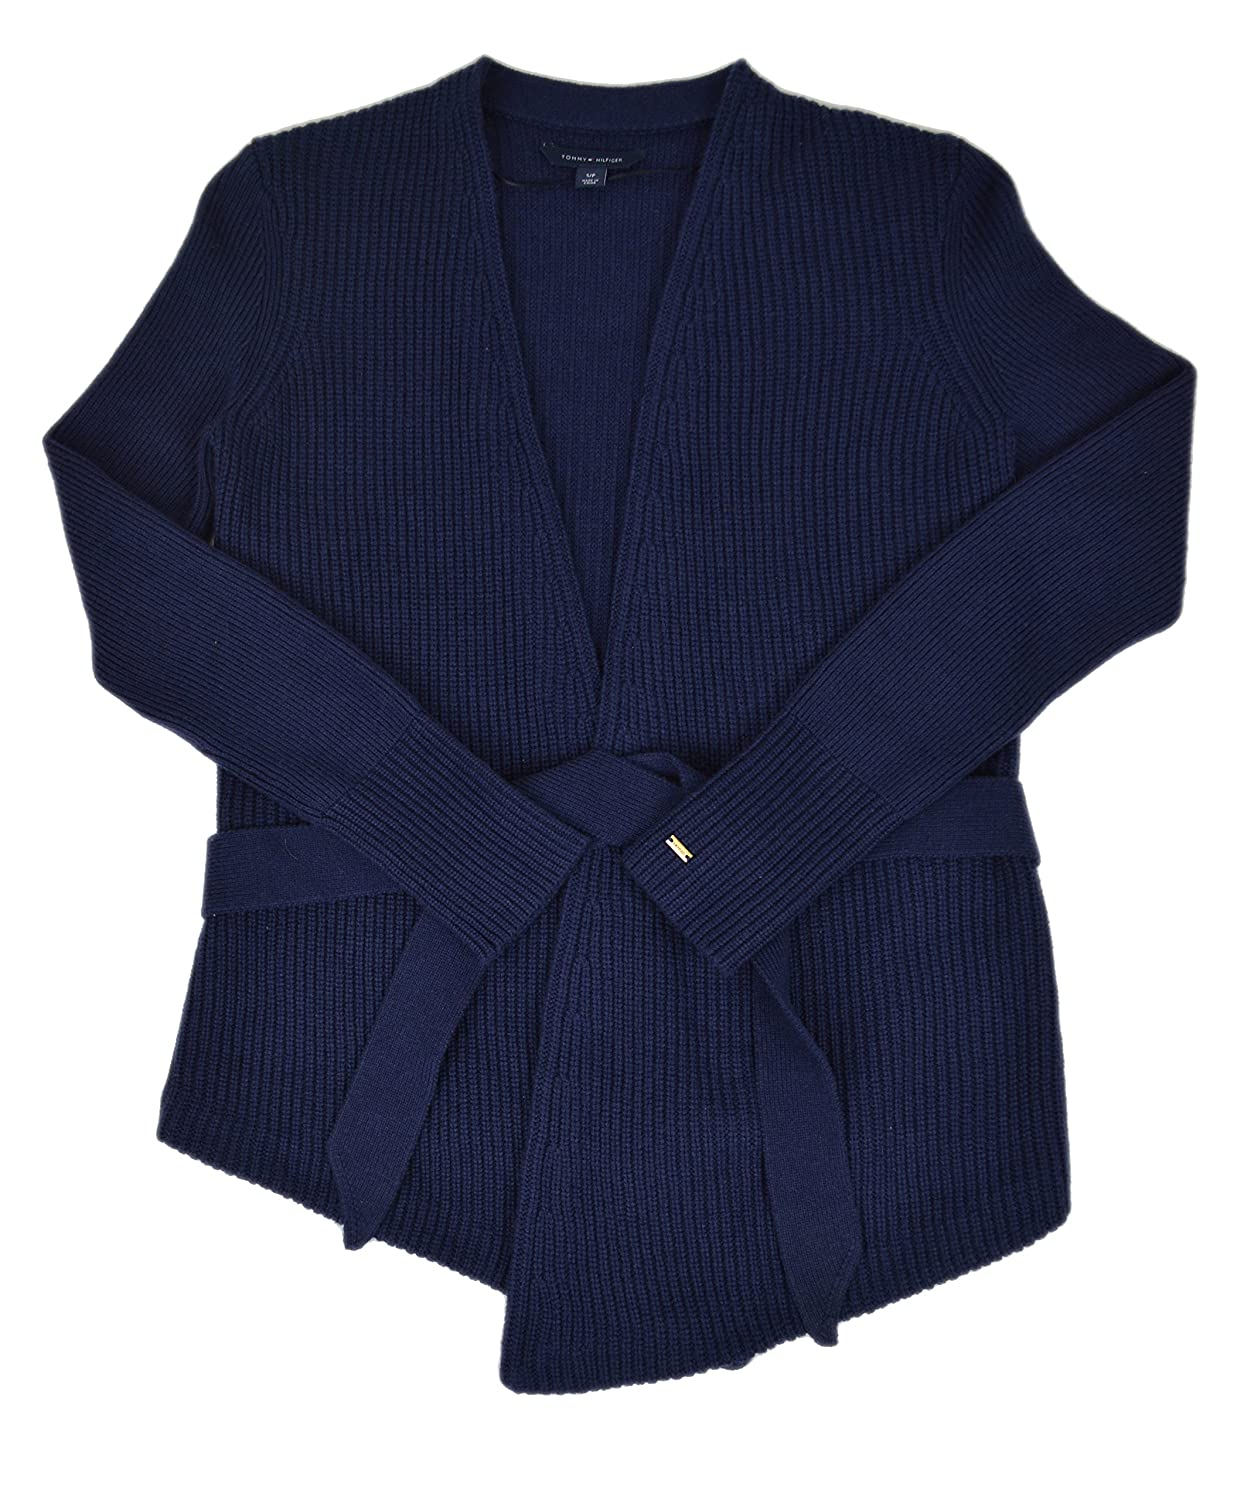 Tommy Hilfiger Belted Open-front Cardigan Peacoat Small